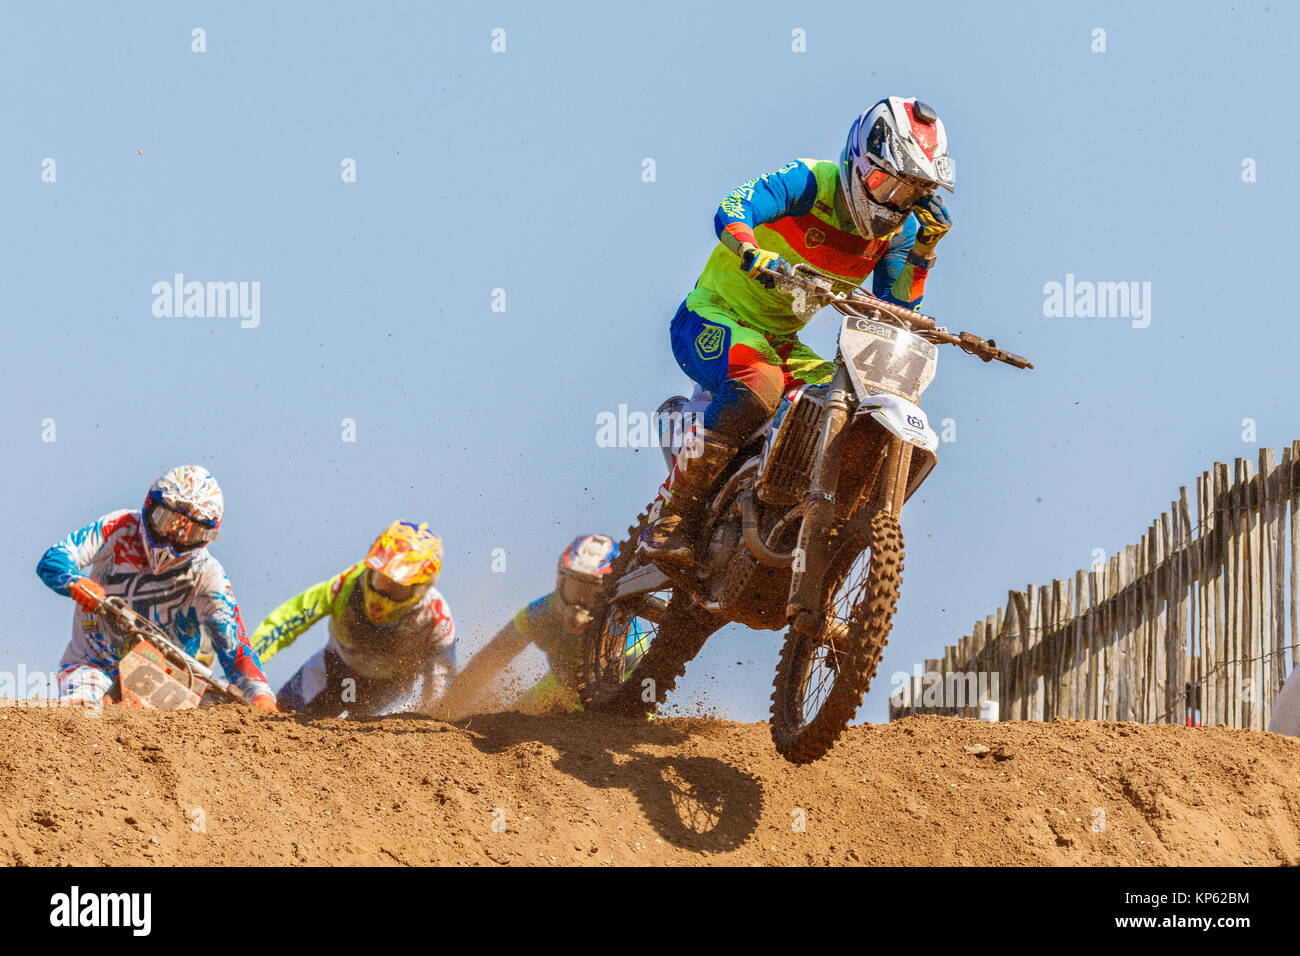 Elliott Banks-Browne on the Geartec Husqvarna Racing MX1 at the Maxxis British Motocross Championship, Lyng, Cadders - Stock Image